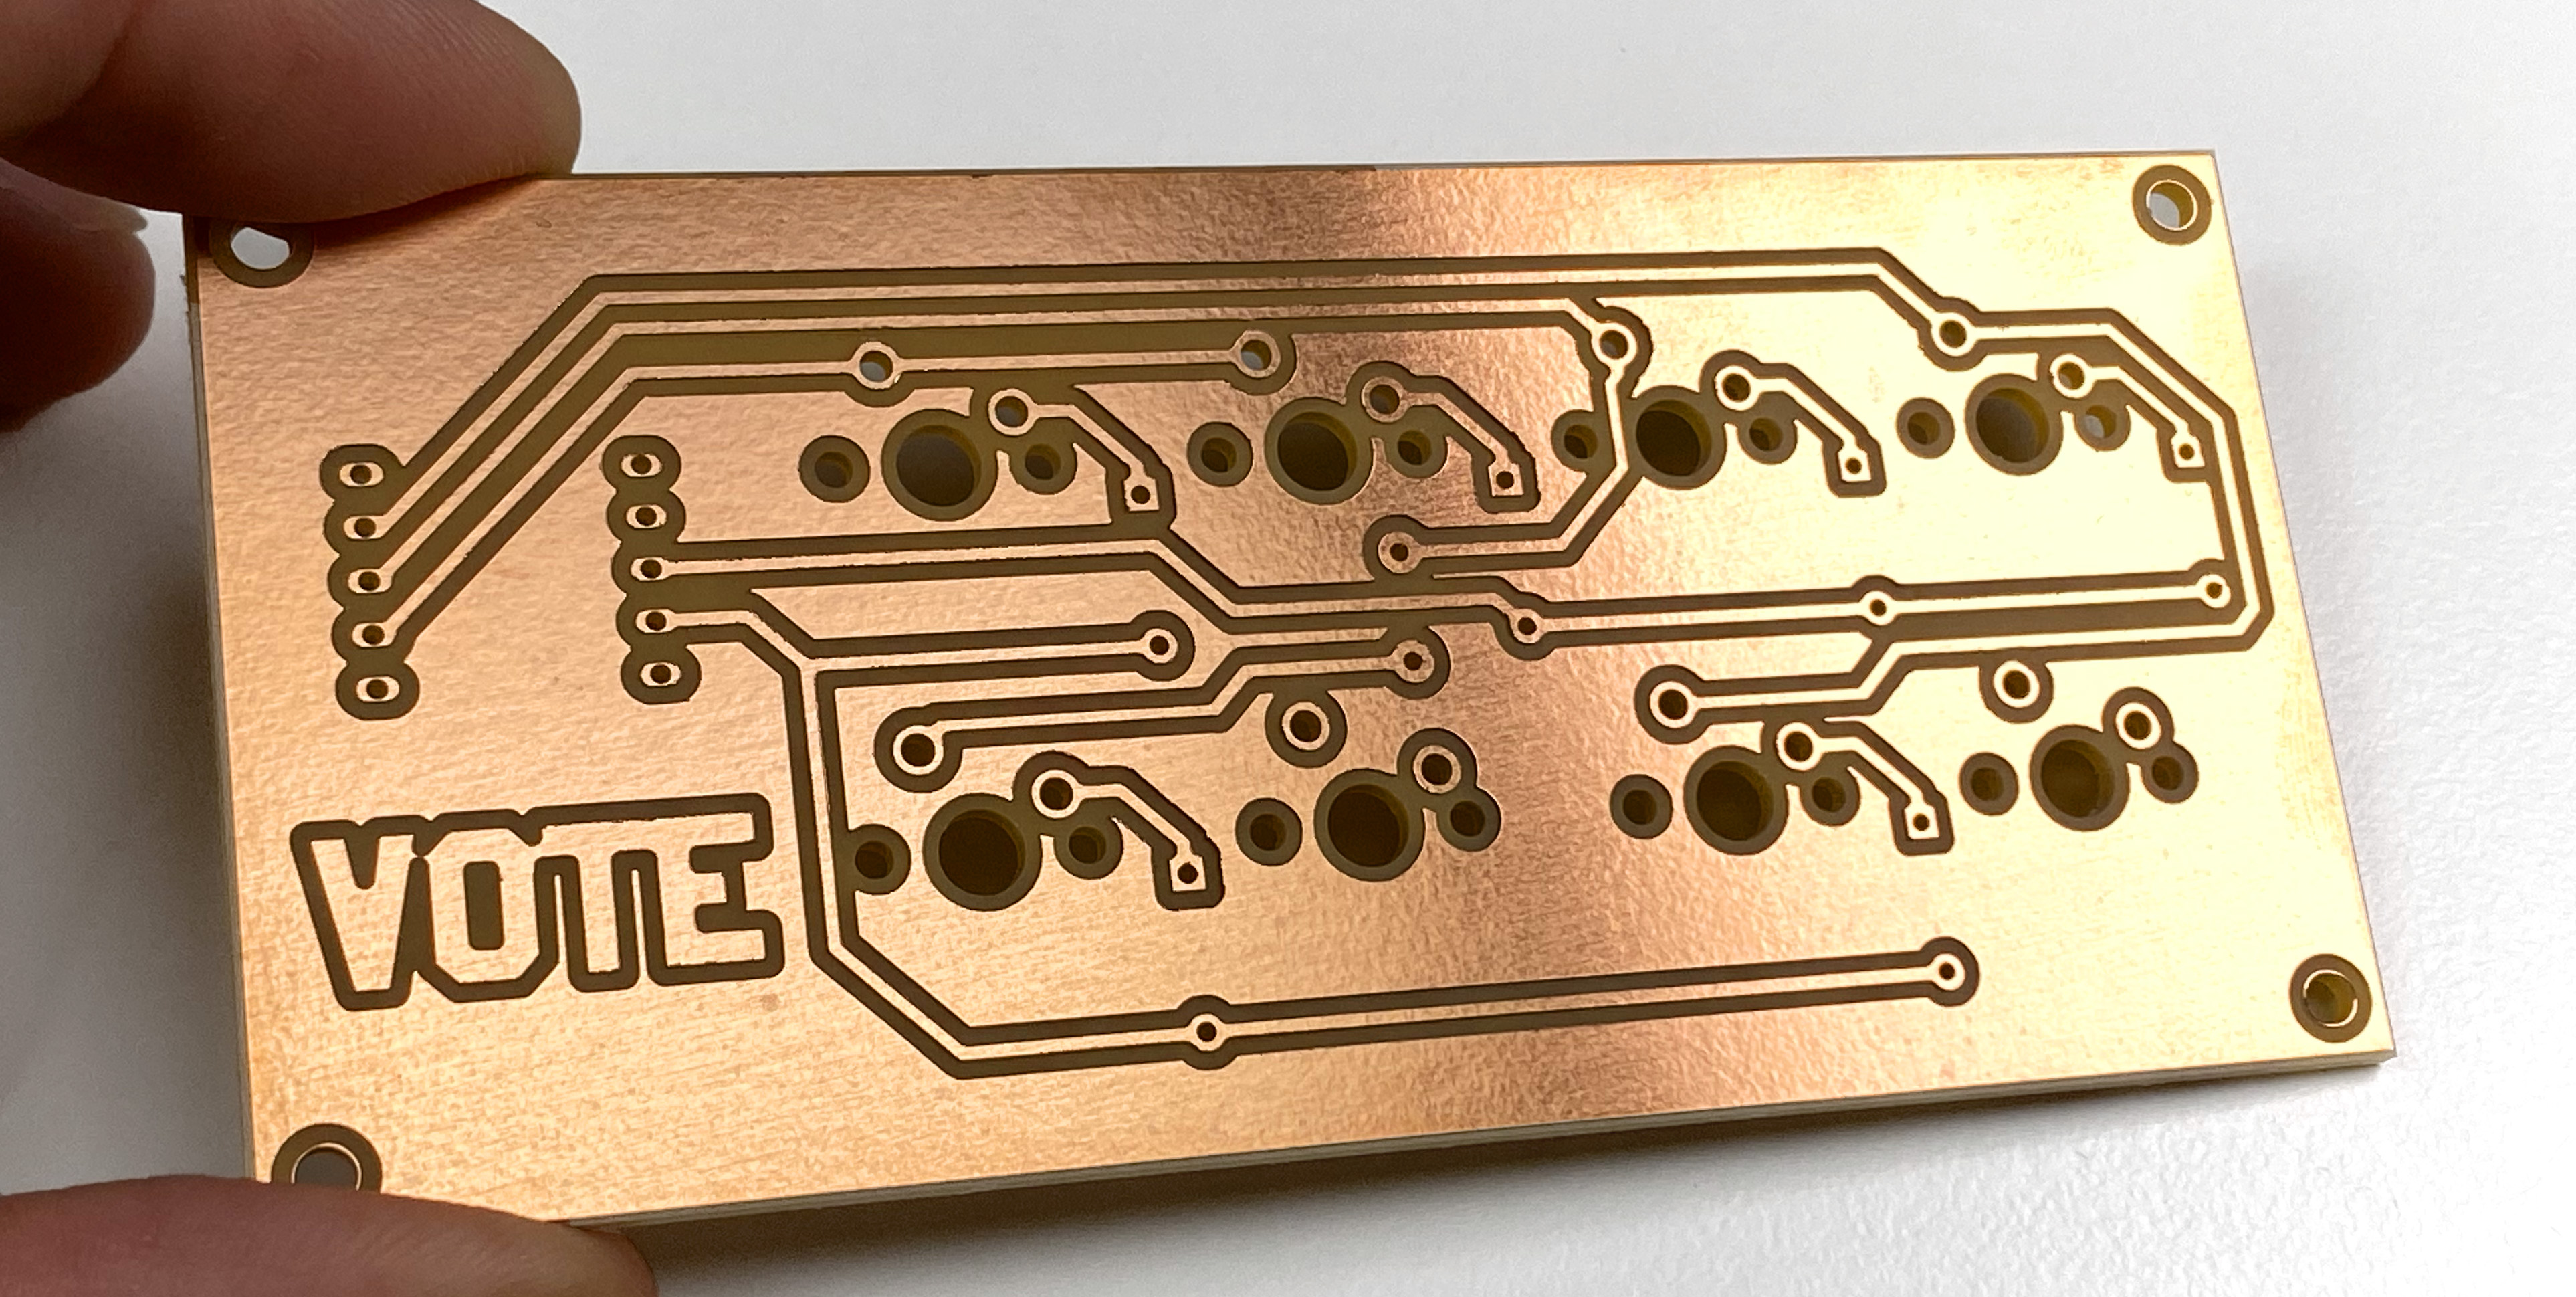 projects_pcb1-cropped.jpg